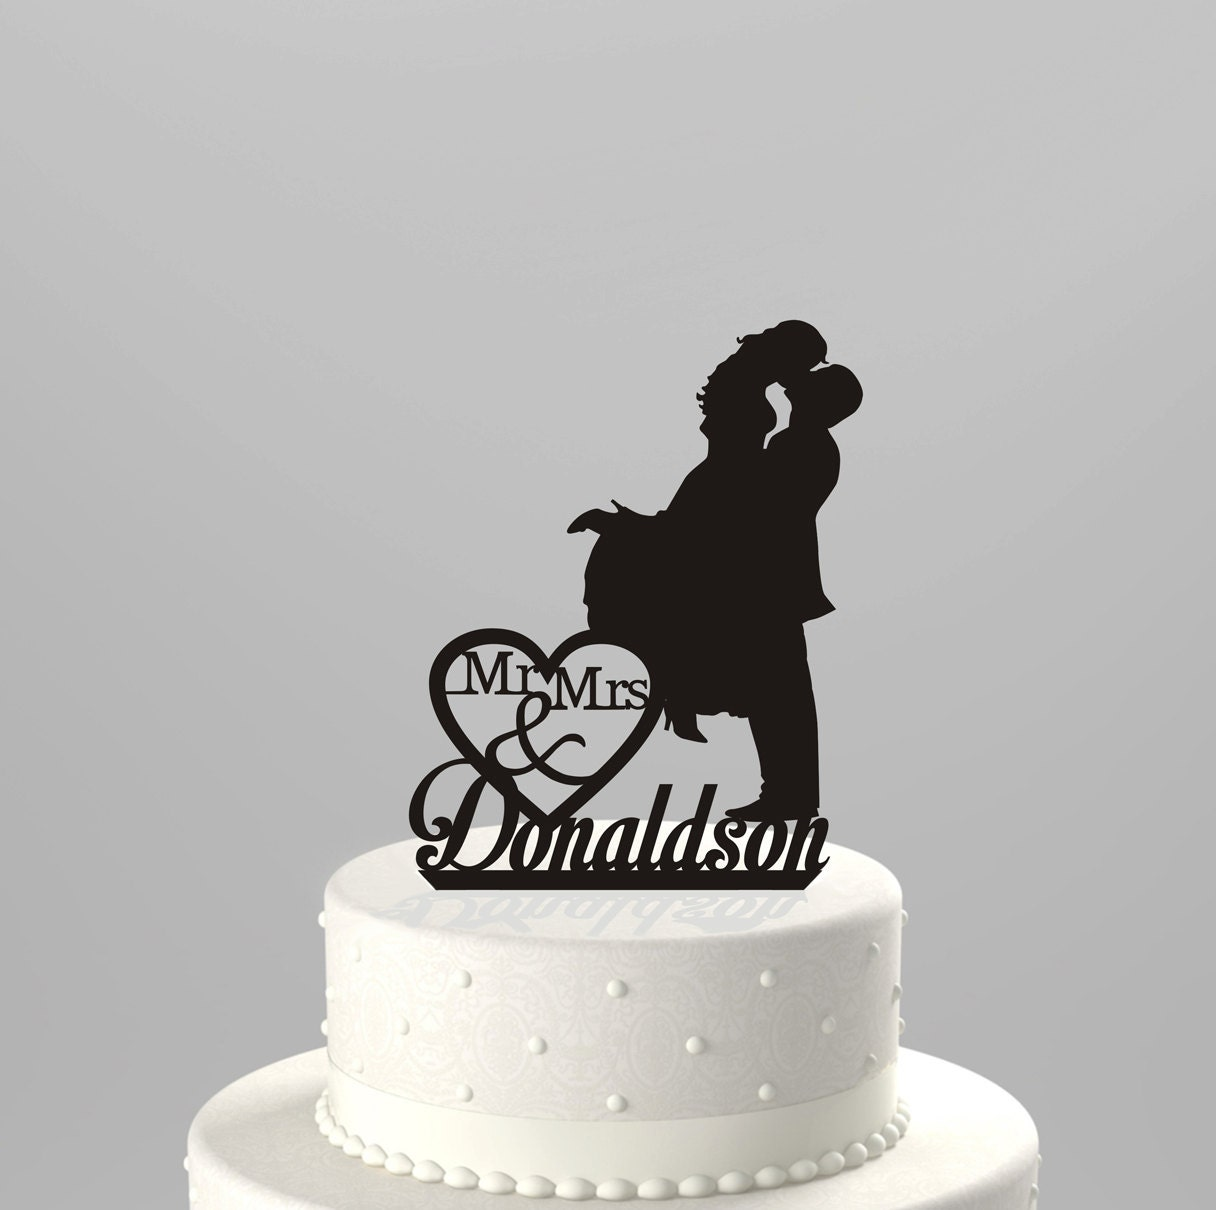 Wedding cake ornaments - Wedding Cake Topper Silhouette Couple Mr Mrs Personalized With Last Name Acrylic Cake Topper